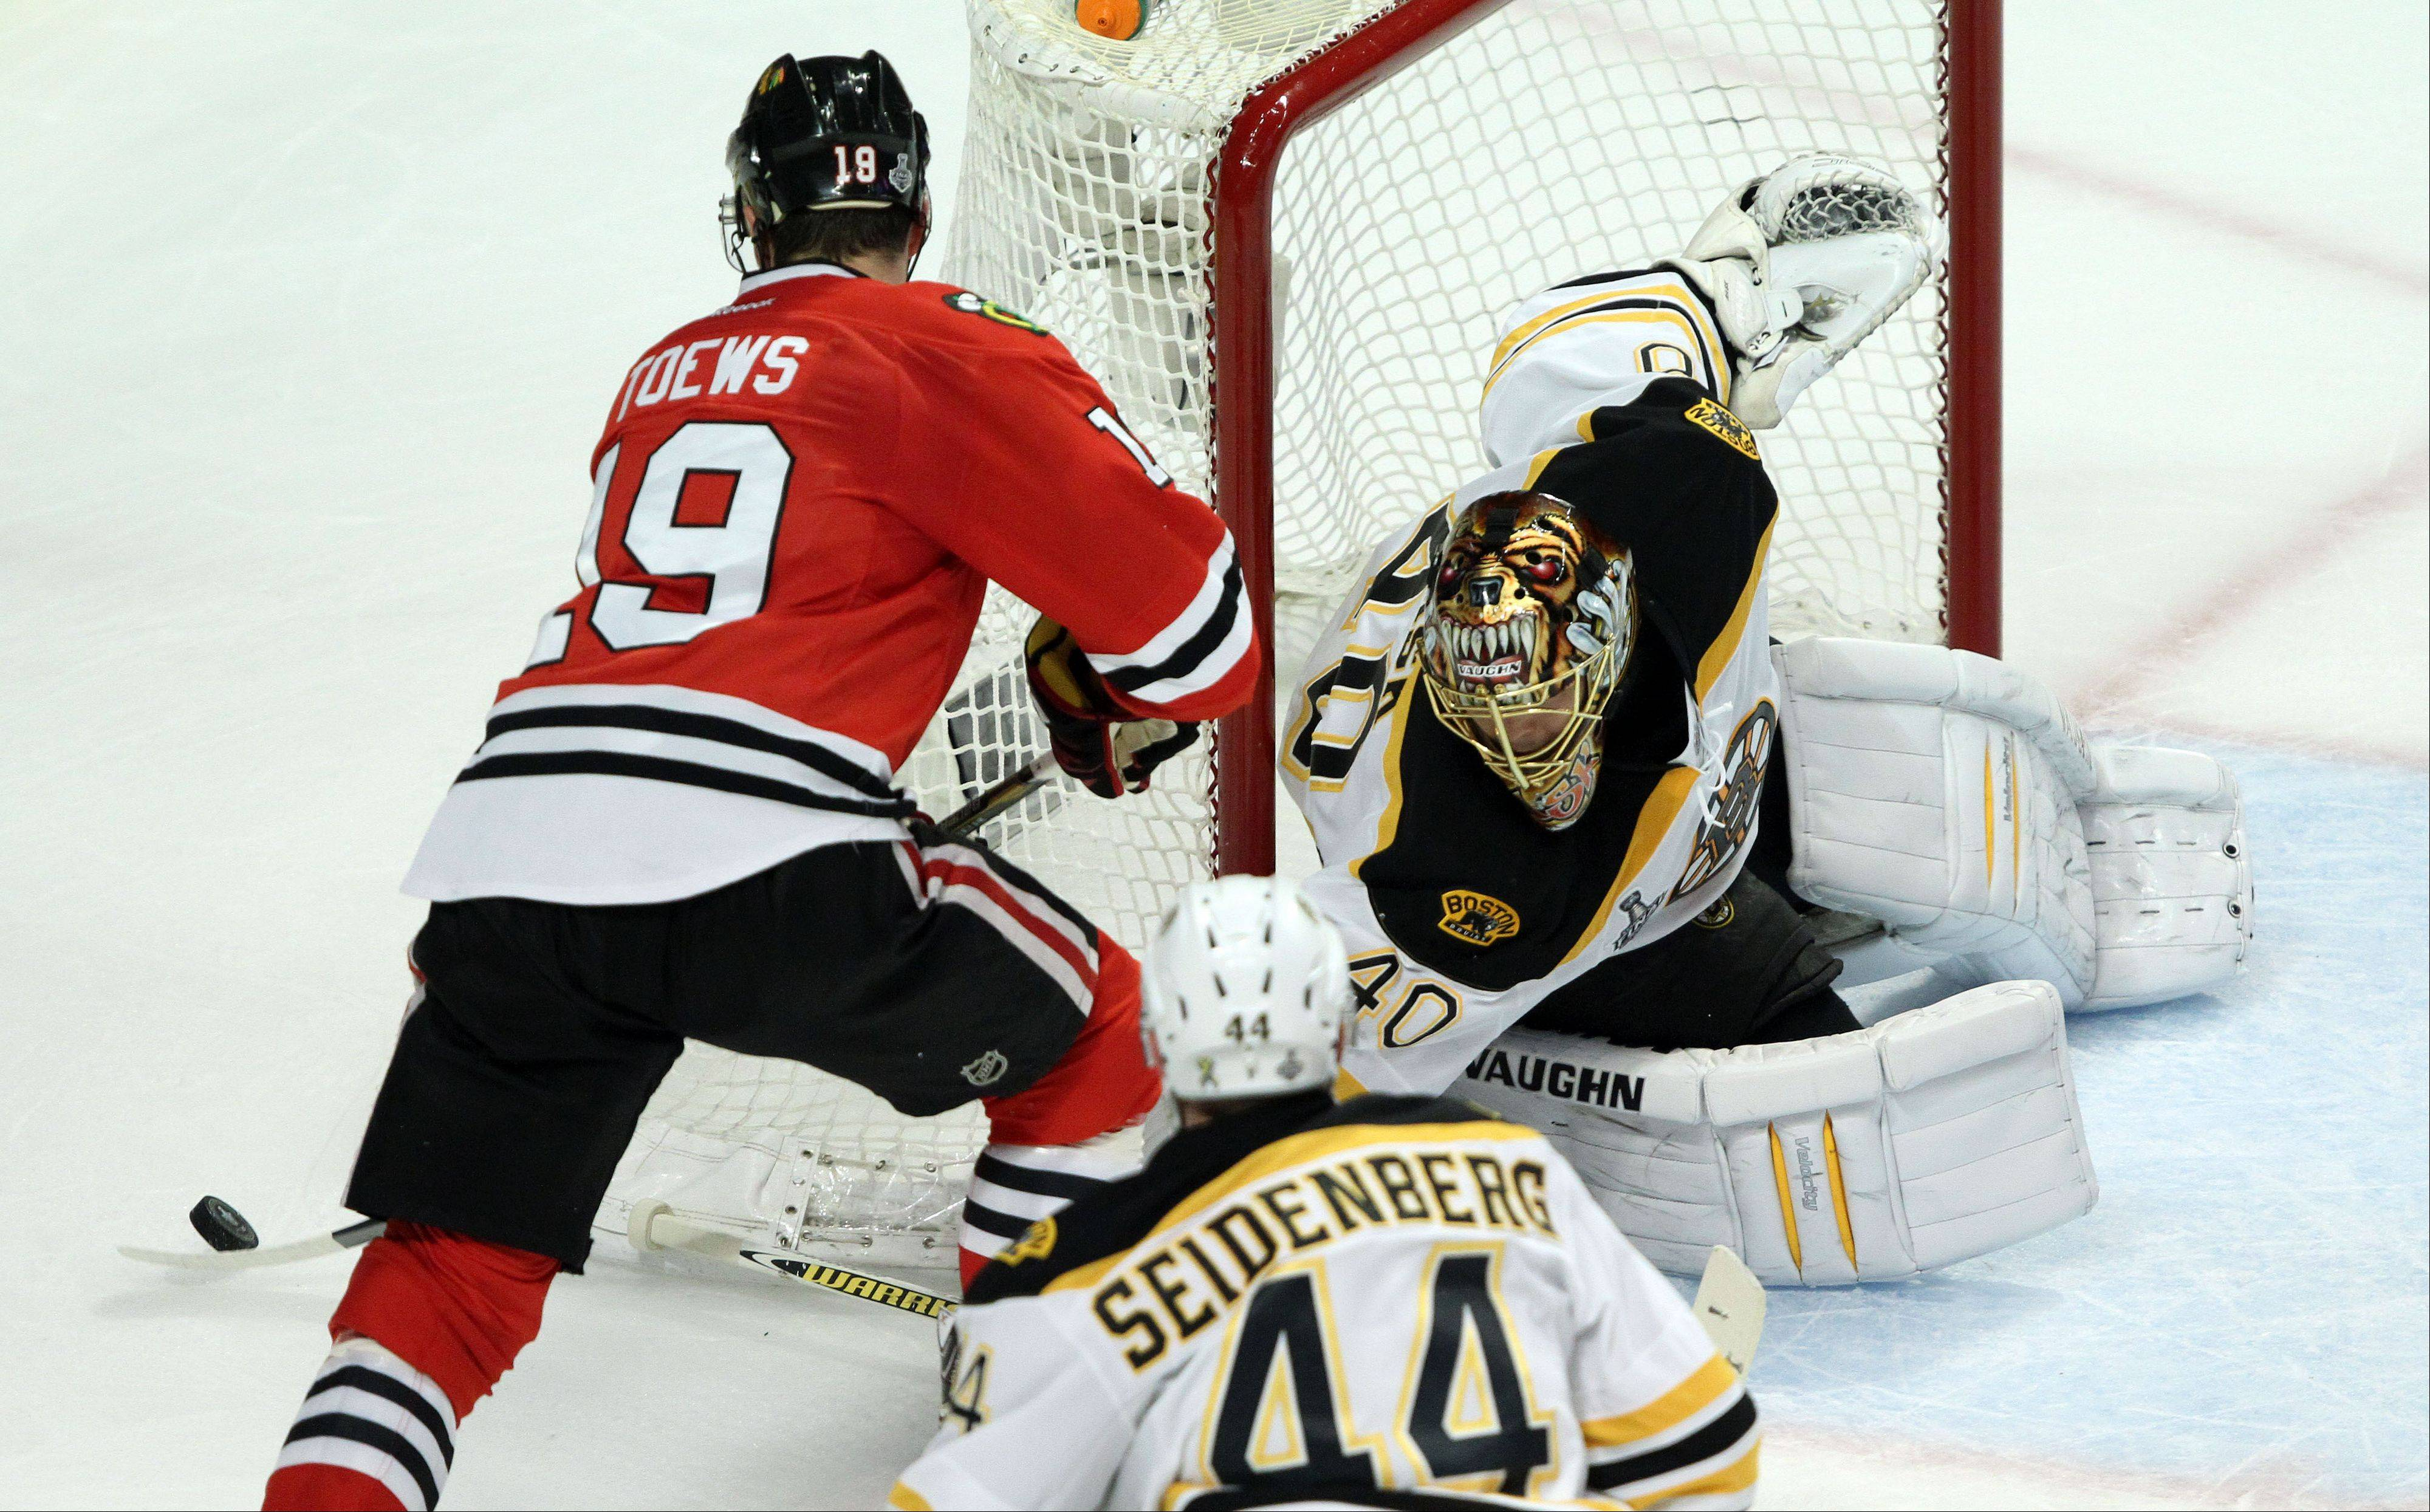 Blackhawks center Jonathan Toews tries a wrap around on Boston Bruins goalie Tuukka Rask during game 2 of the Stanley Cup Final at the United Center on Saturday.